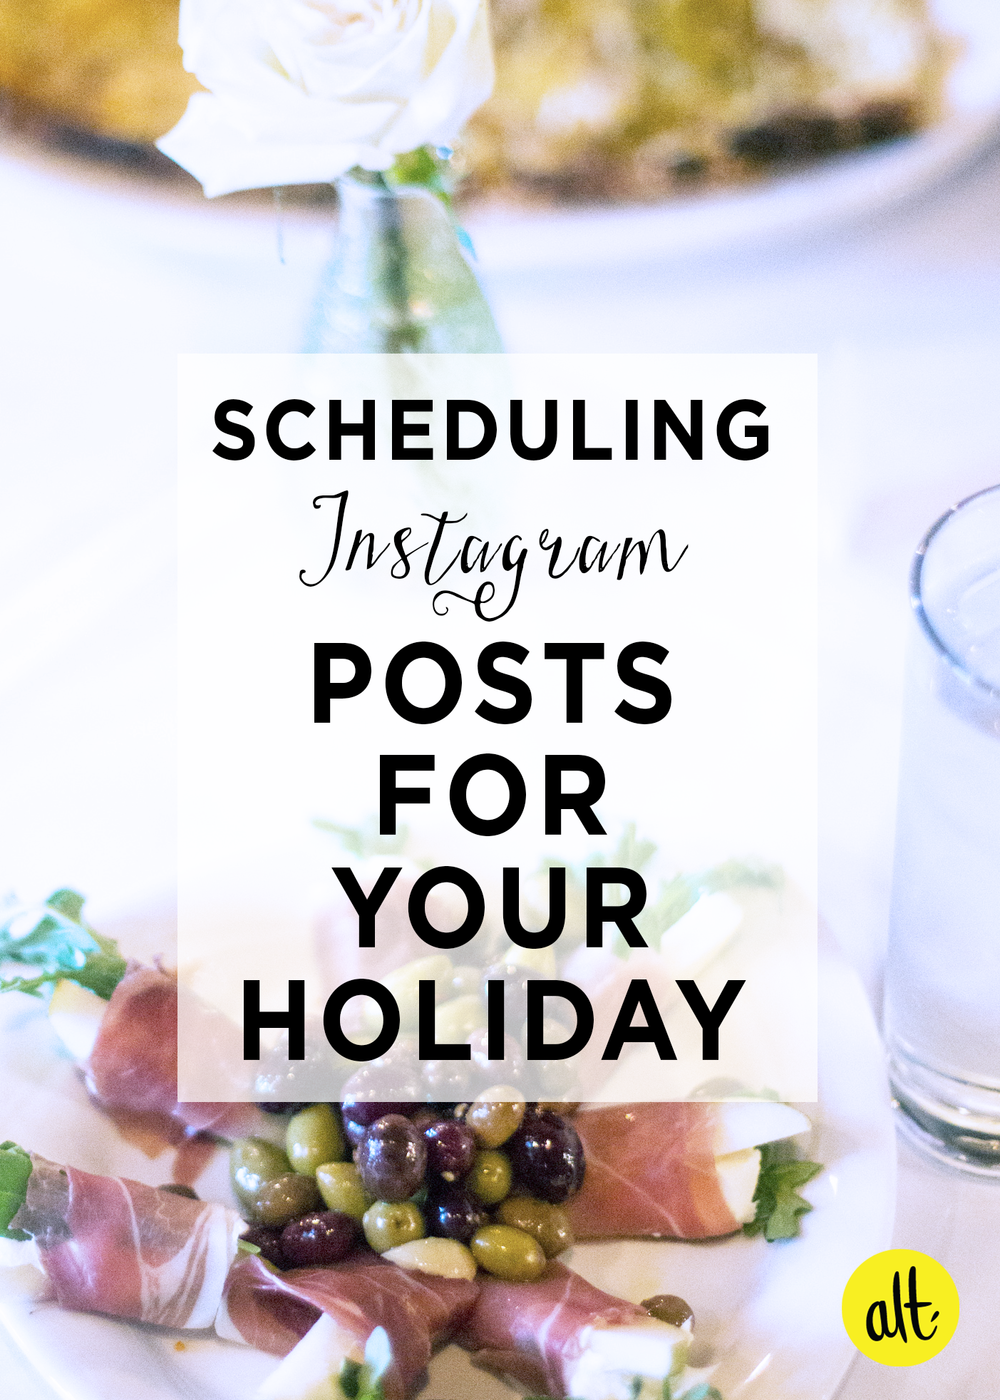 Scheduling-Instagram-Posts-for-Your-Holiday